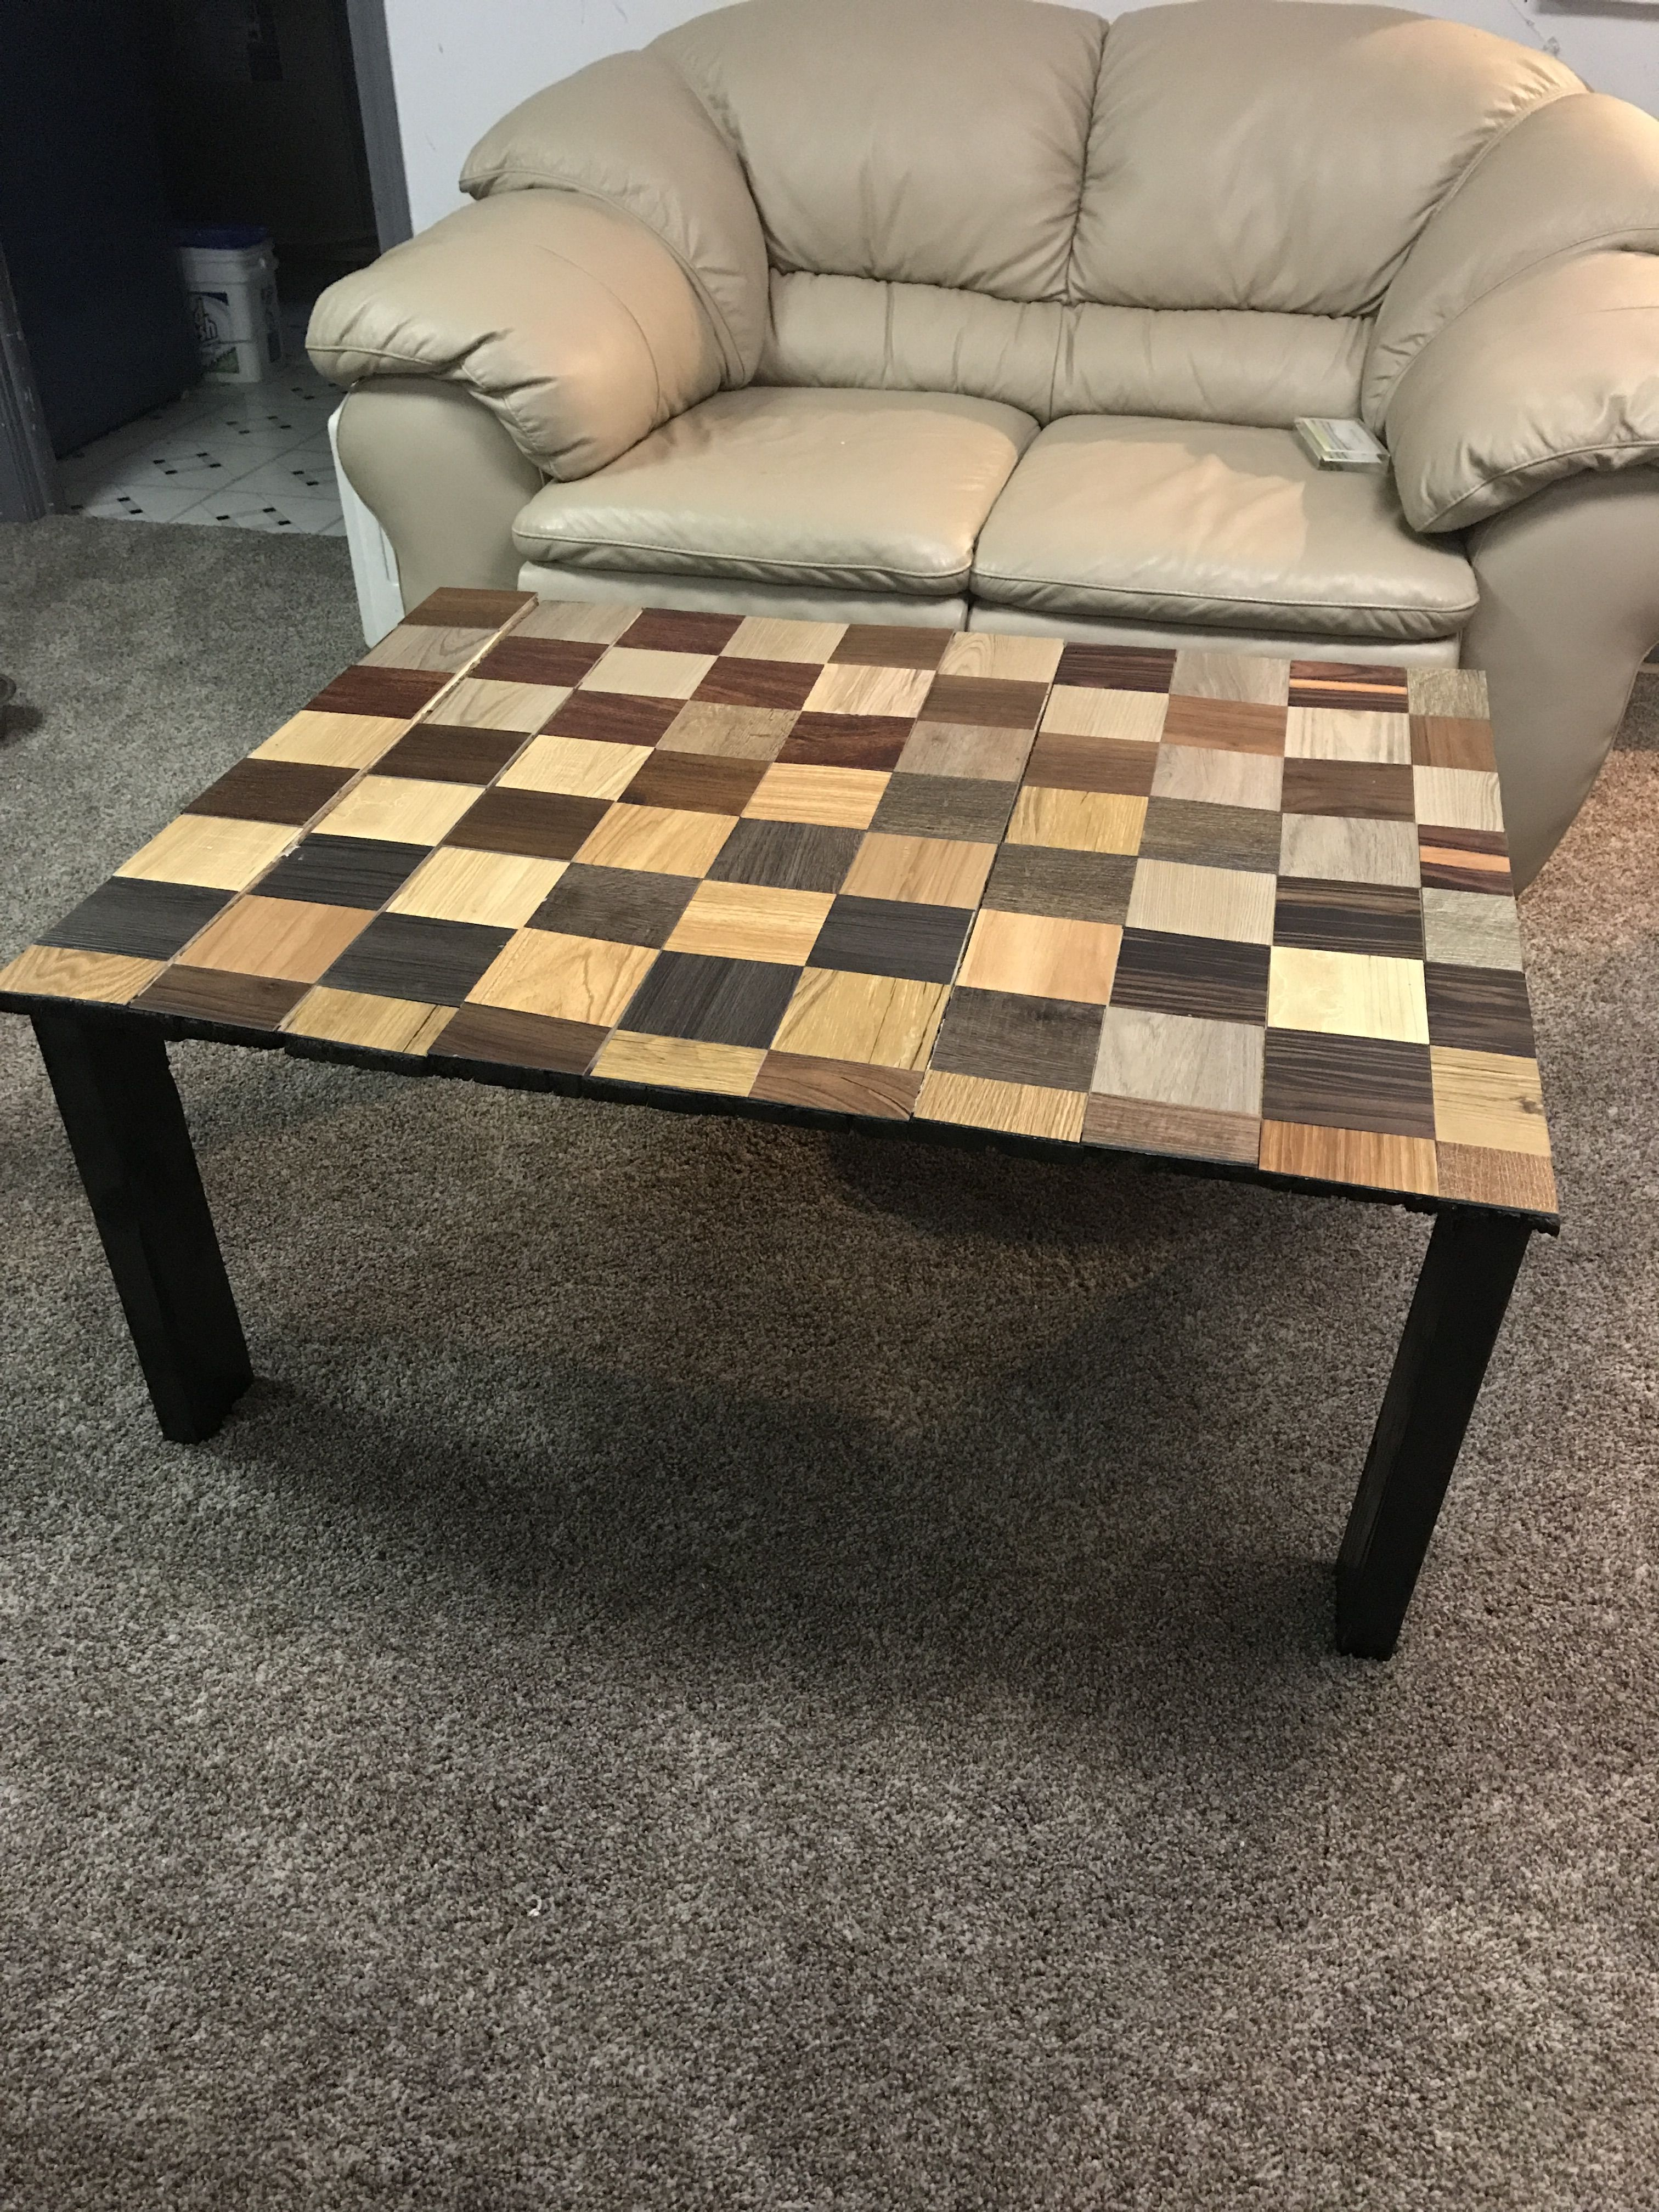 Completely FREE coffee table! Used pallet wood and free ...